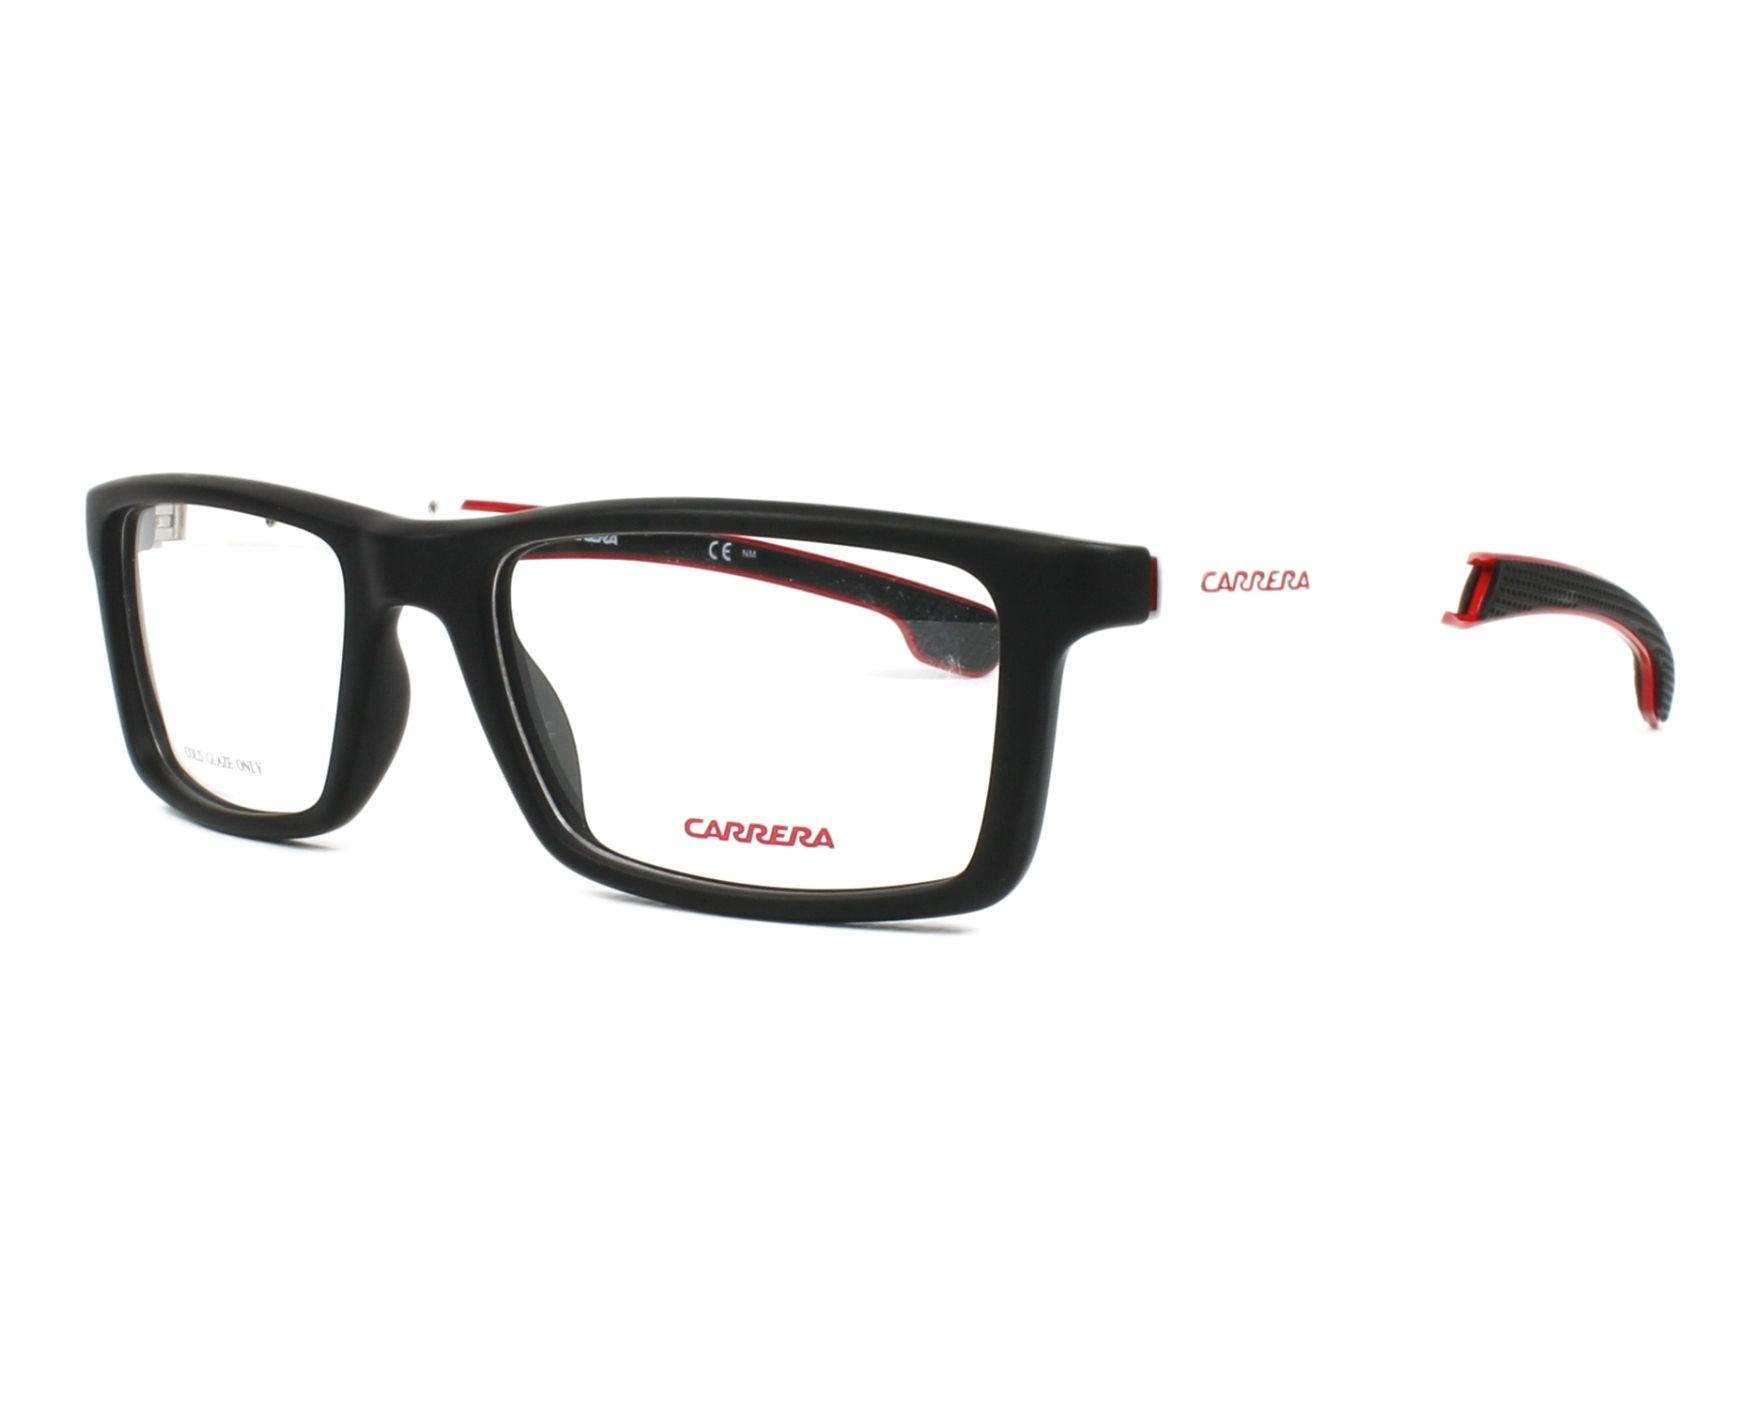 193c2bf8f4438 eyeglasses Carrera 4406-V 003 53-18 Black White profile view